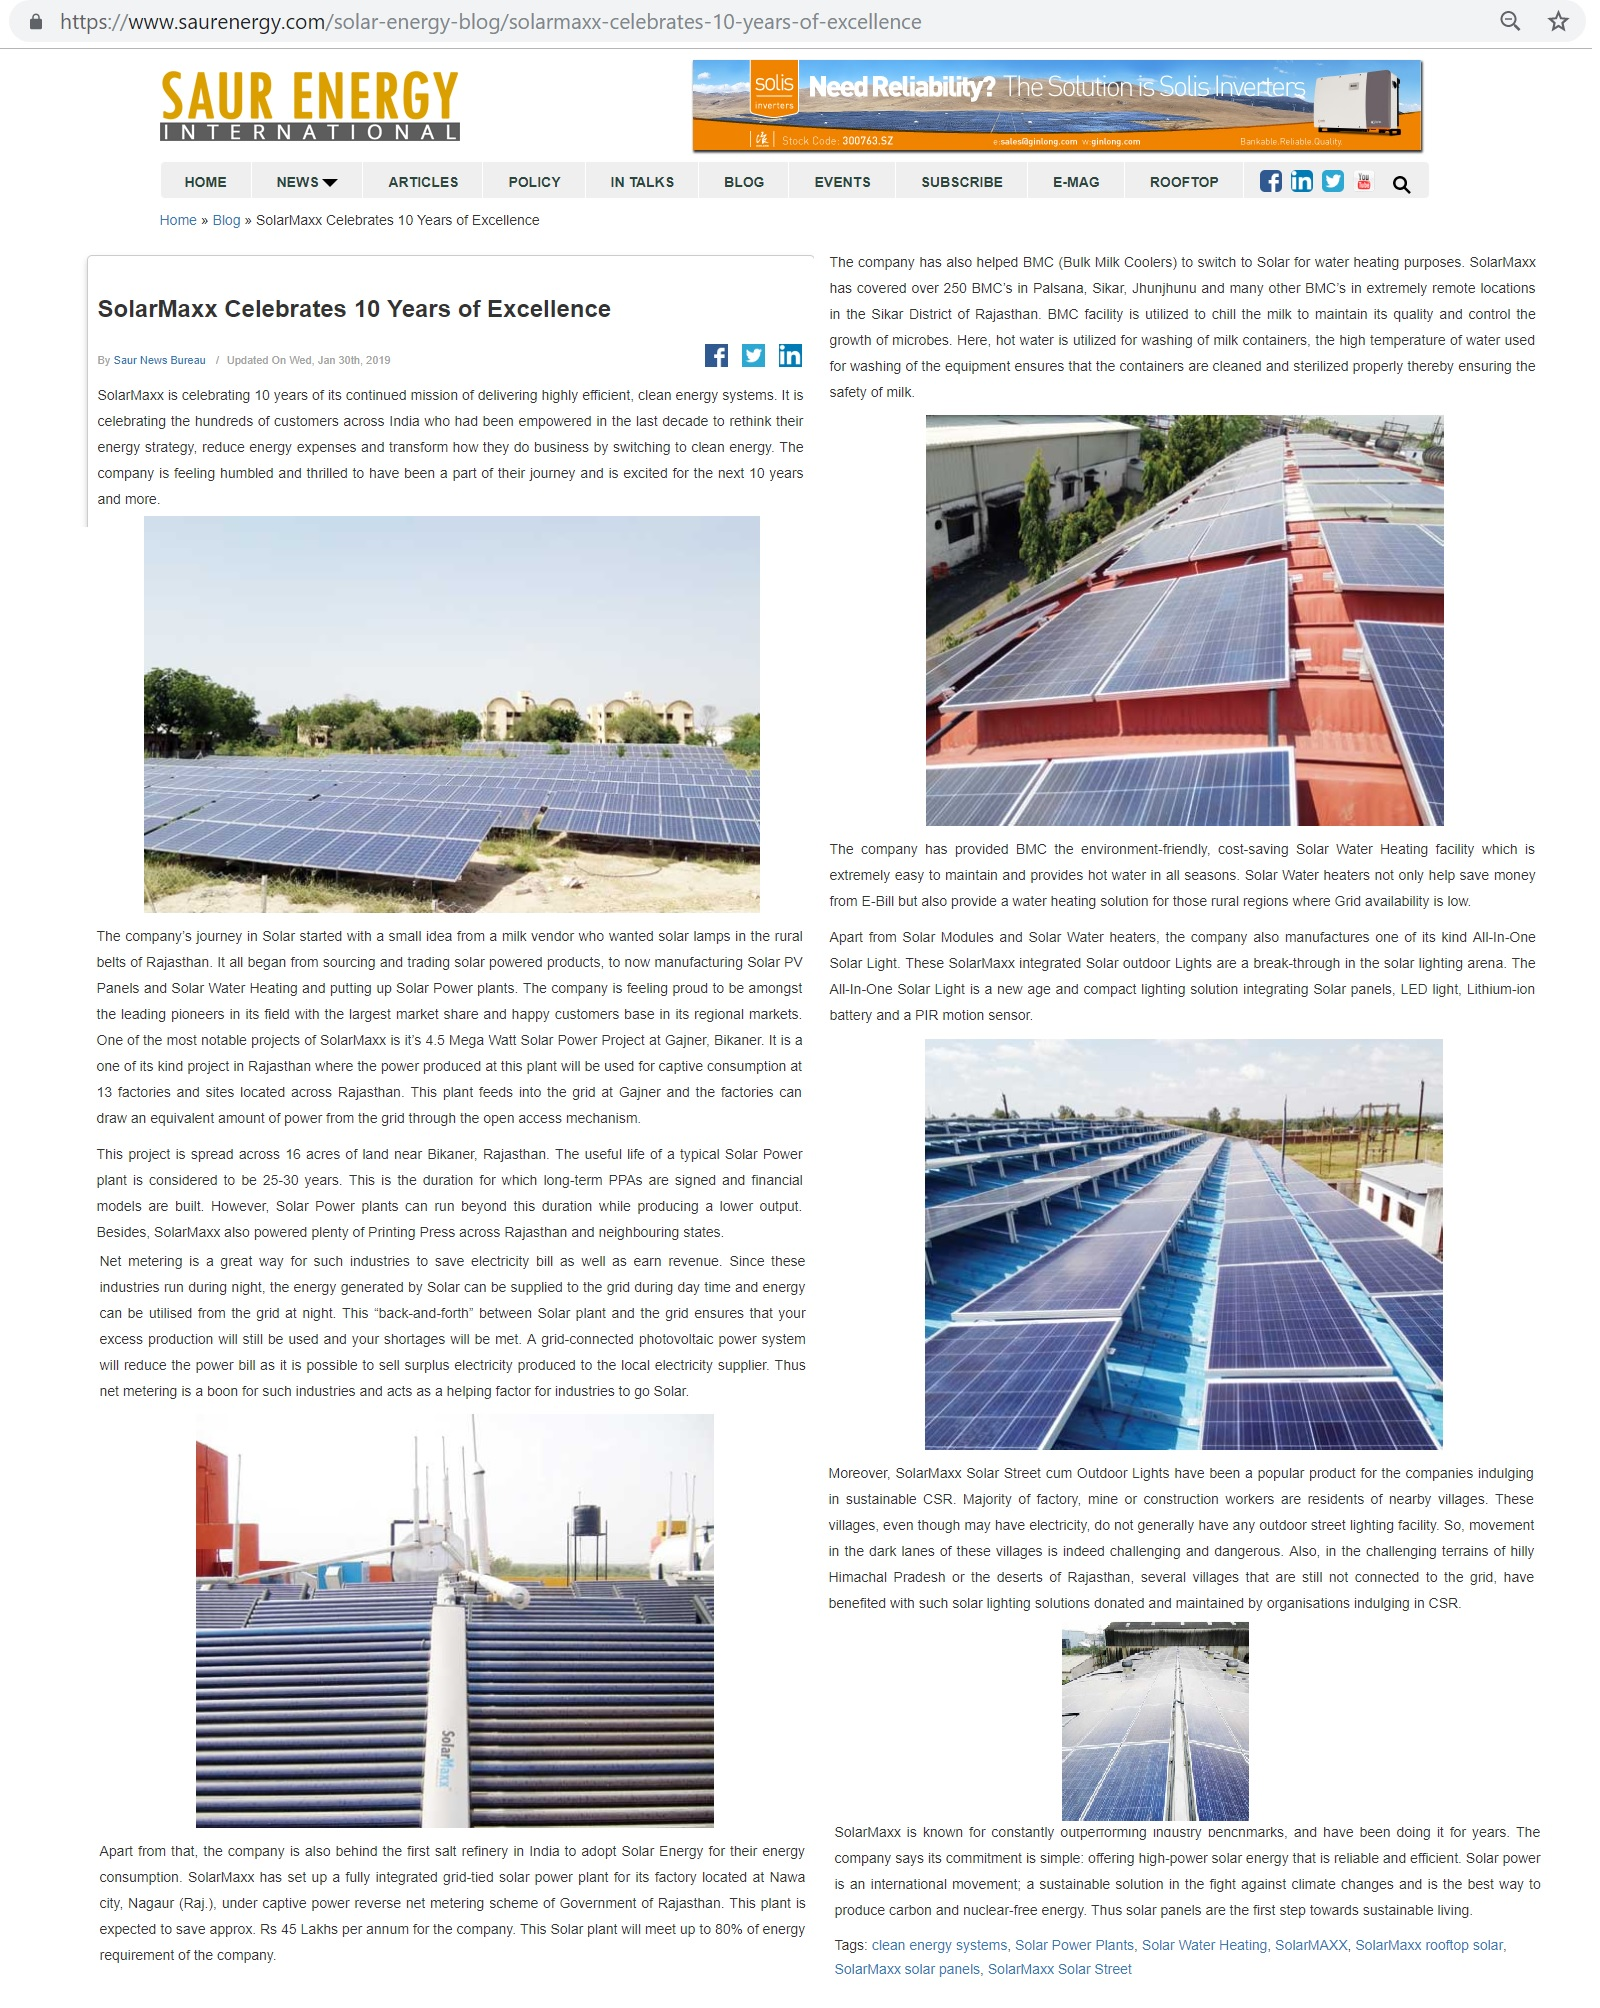 Saur Energy interviews SolarMaxx CEO for a decade in the Solar industry